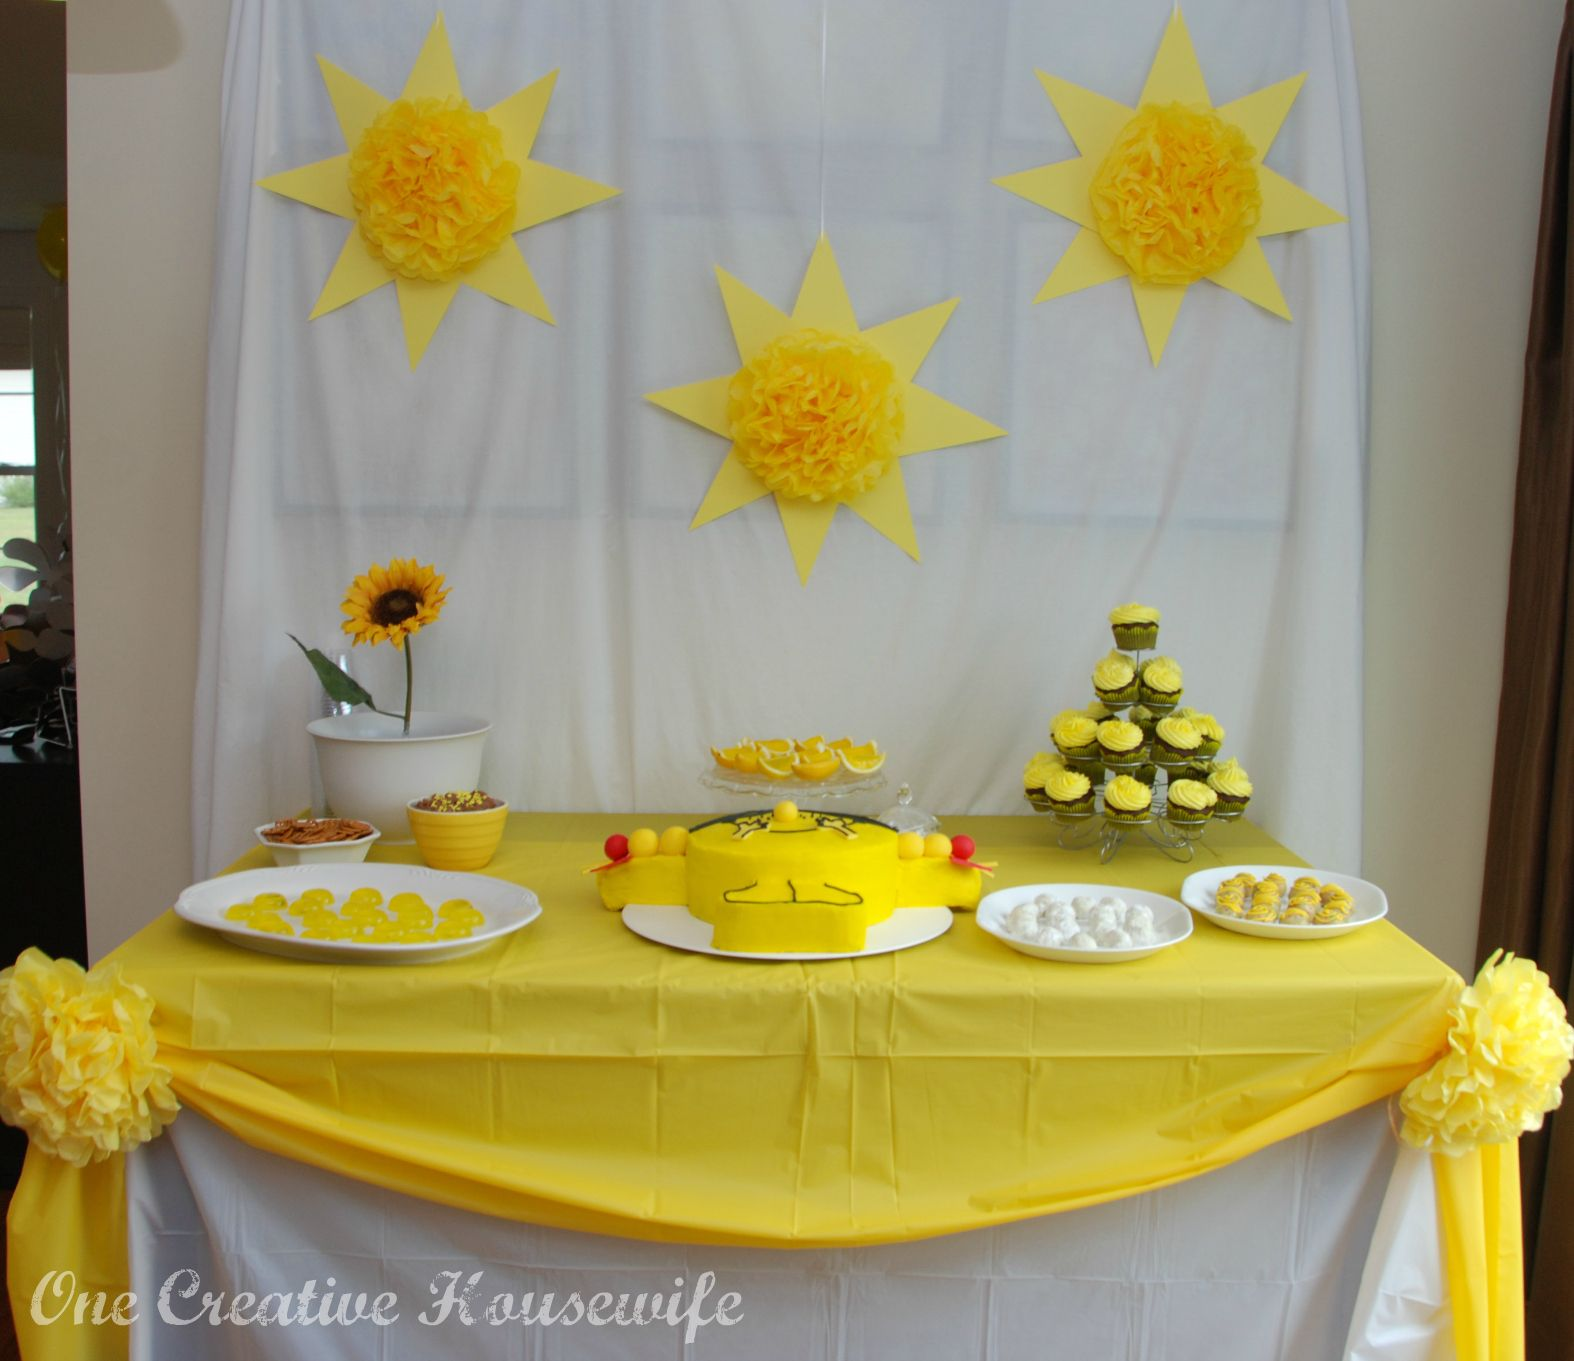 Birthday table decorations for men - Inspiring Ideas For Stunning Table Decorations For Birthdays Excellent Decorations Design Awesome Party Decorations With Light Yellow Sun Flower Ideas